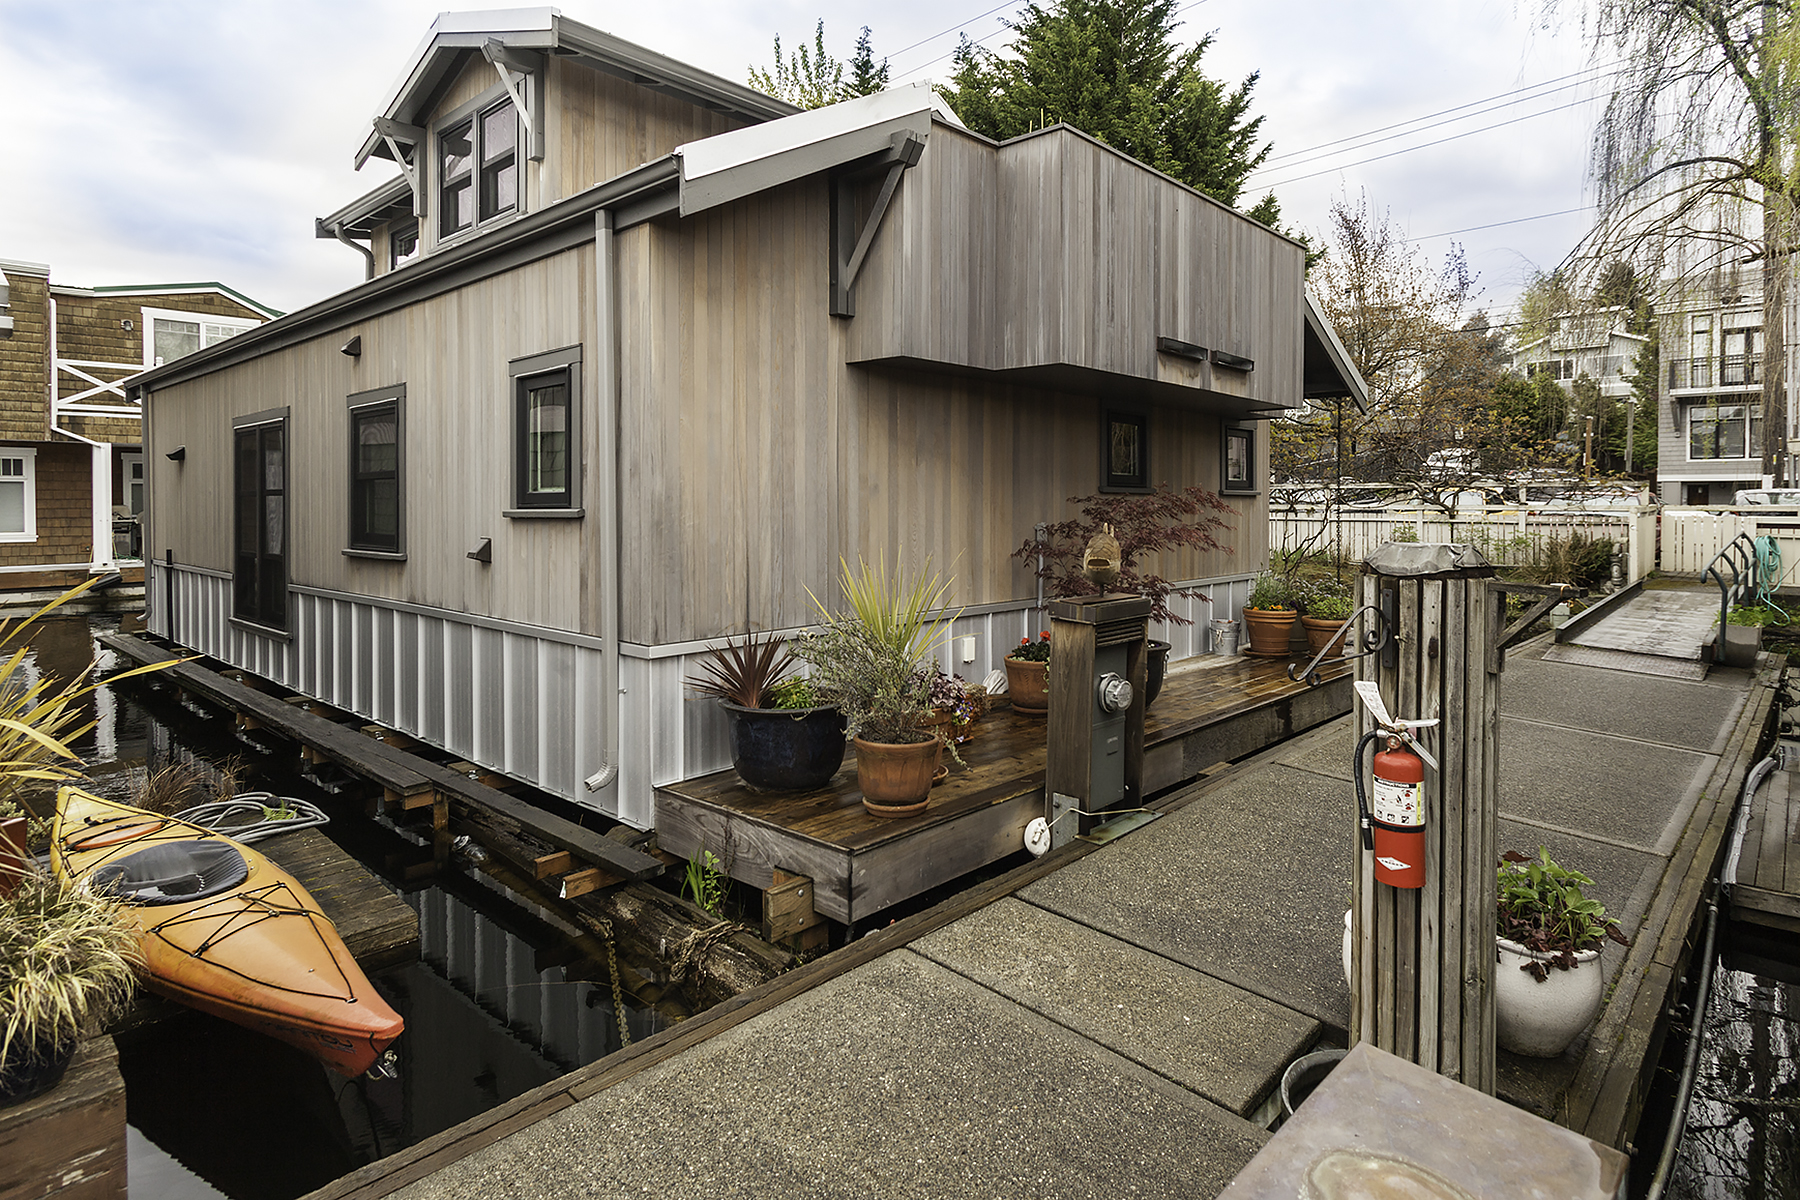 Enjoy the city life at sea in this Eastlake floating home